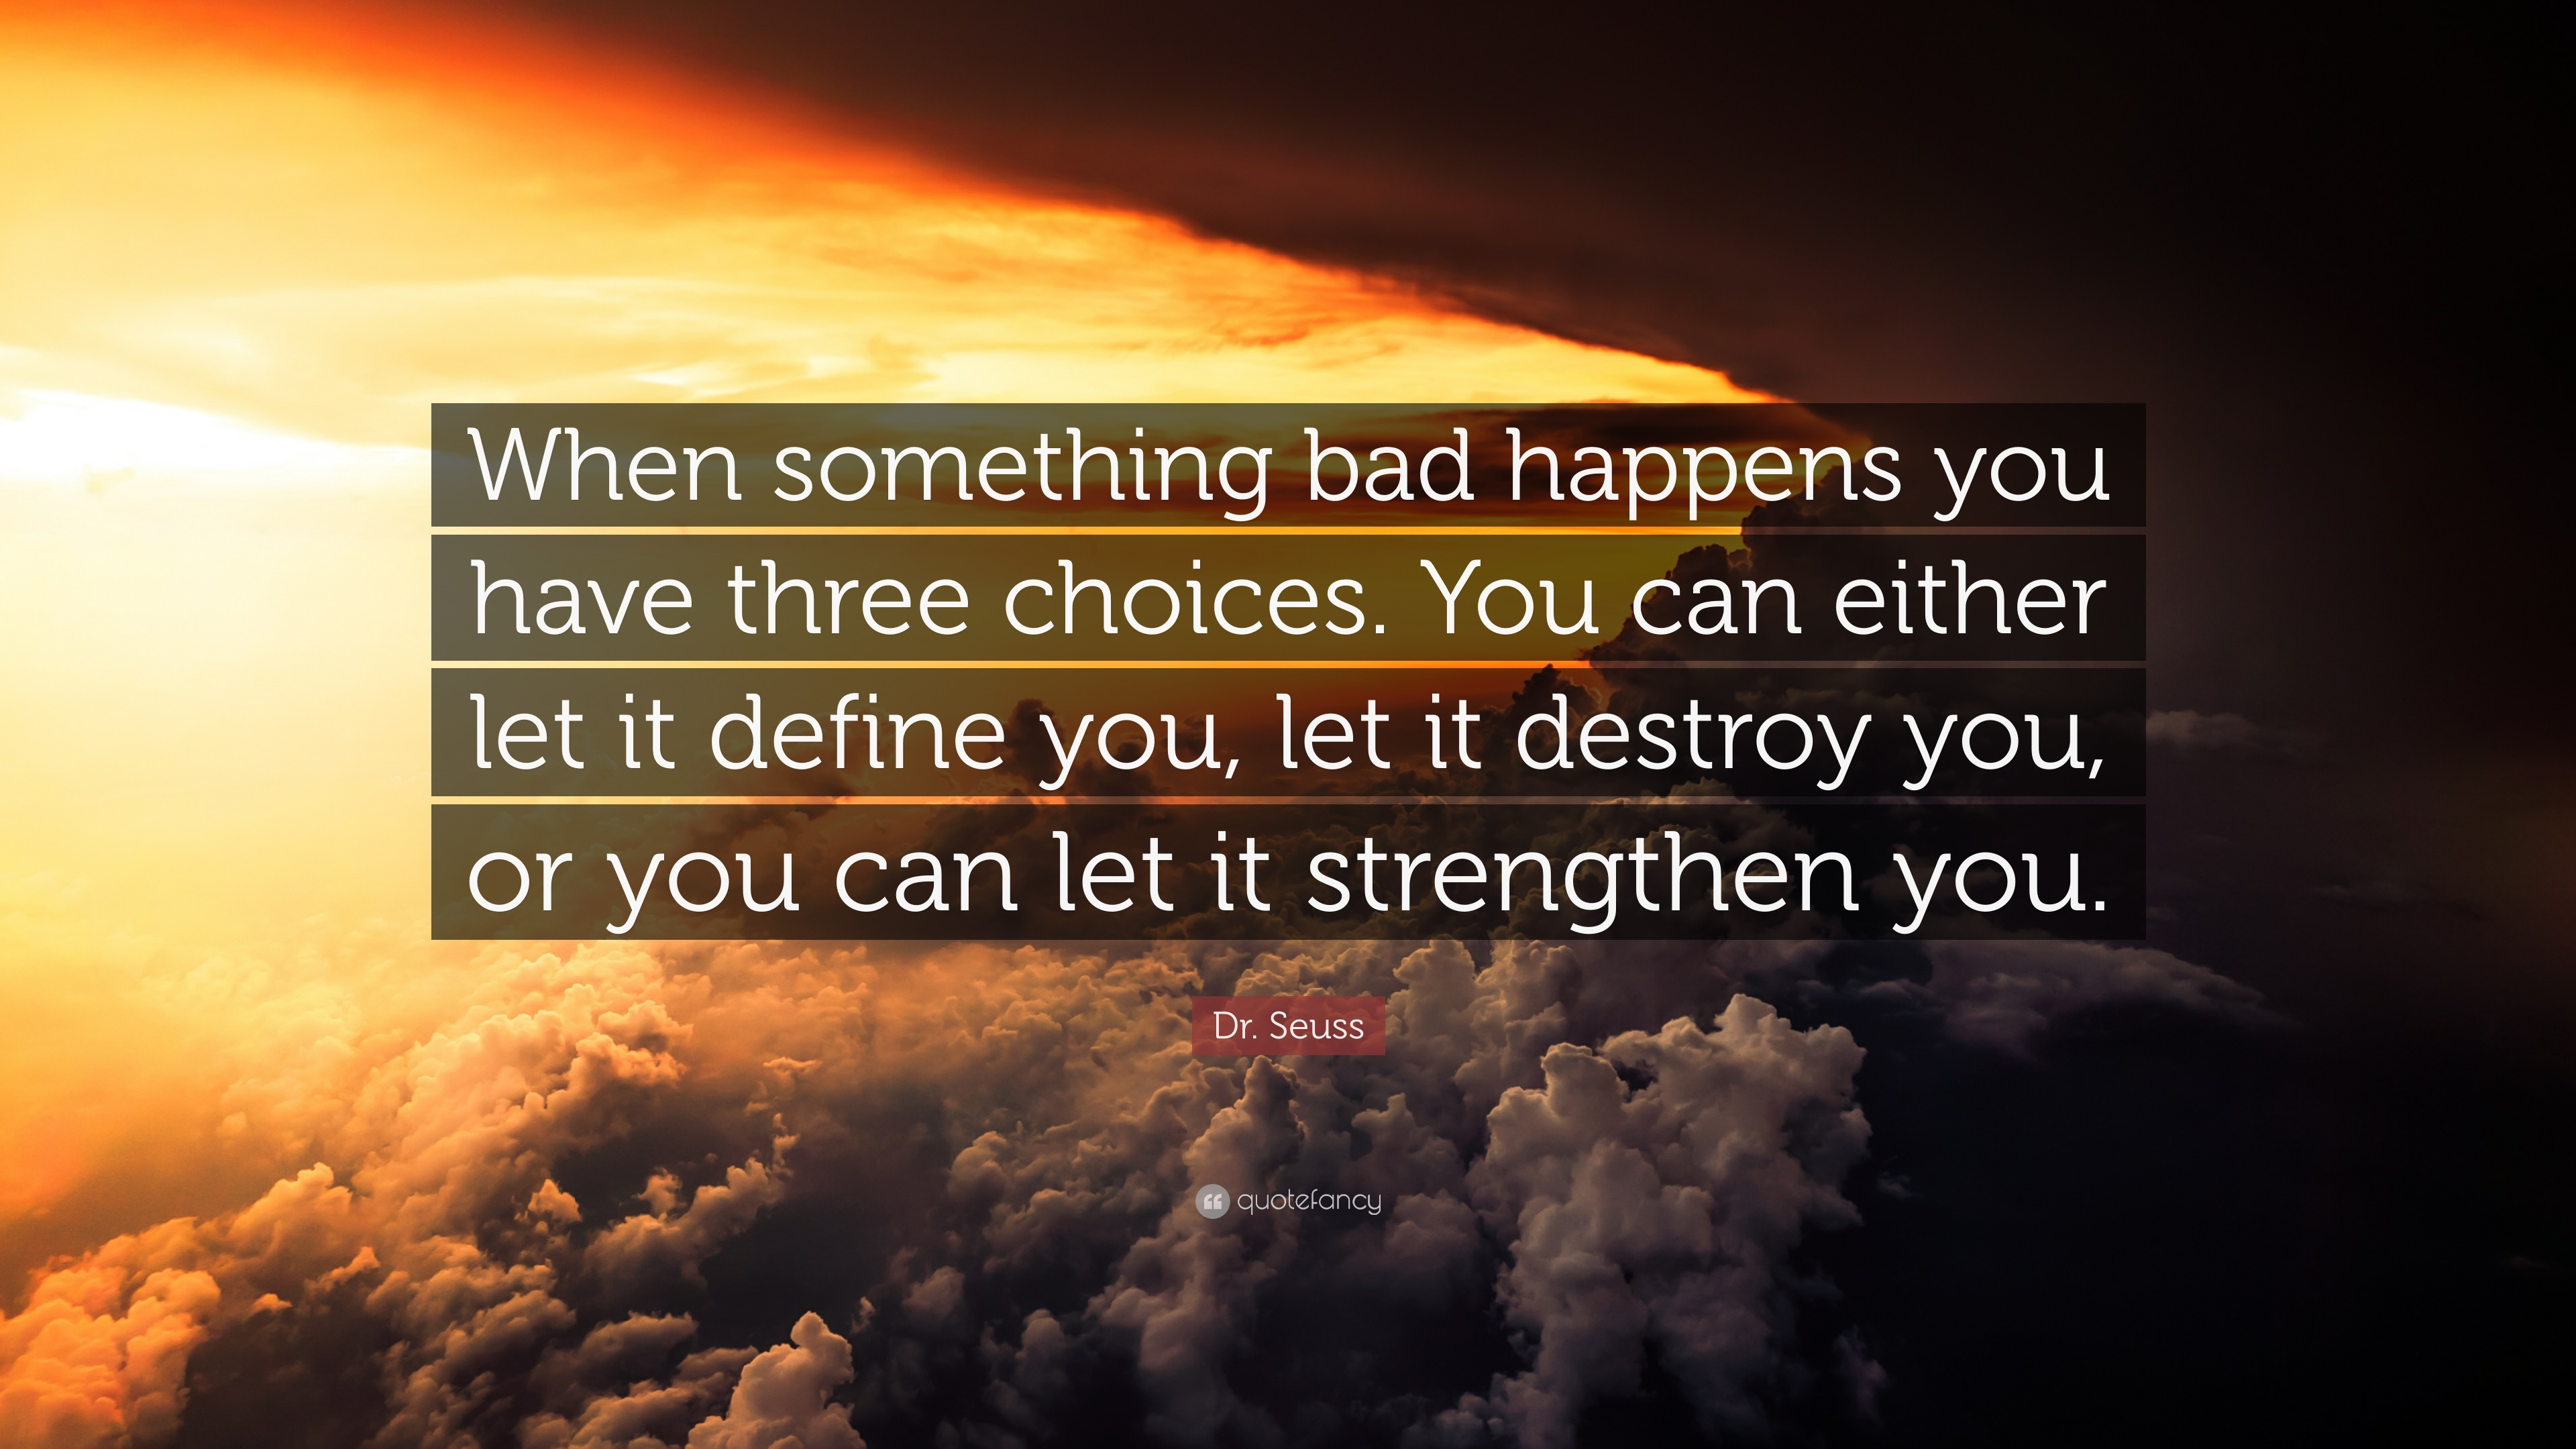 Bad happens you have three choices you can either let it define you